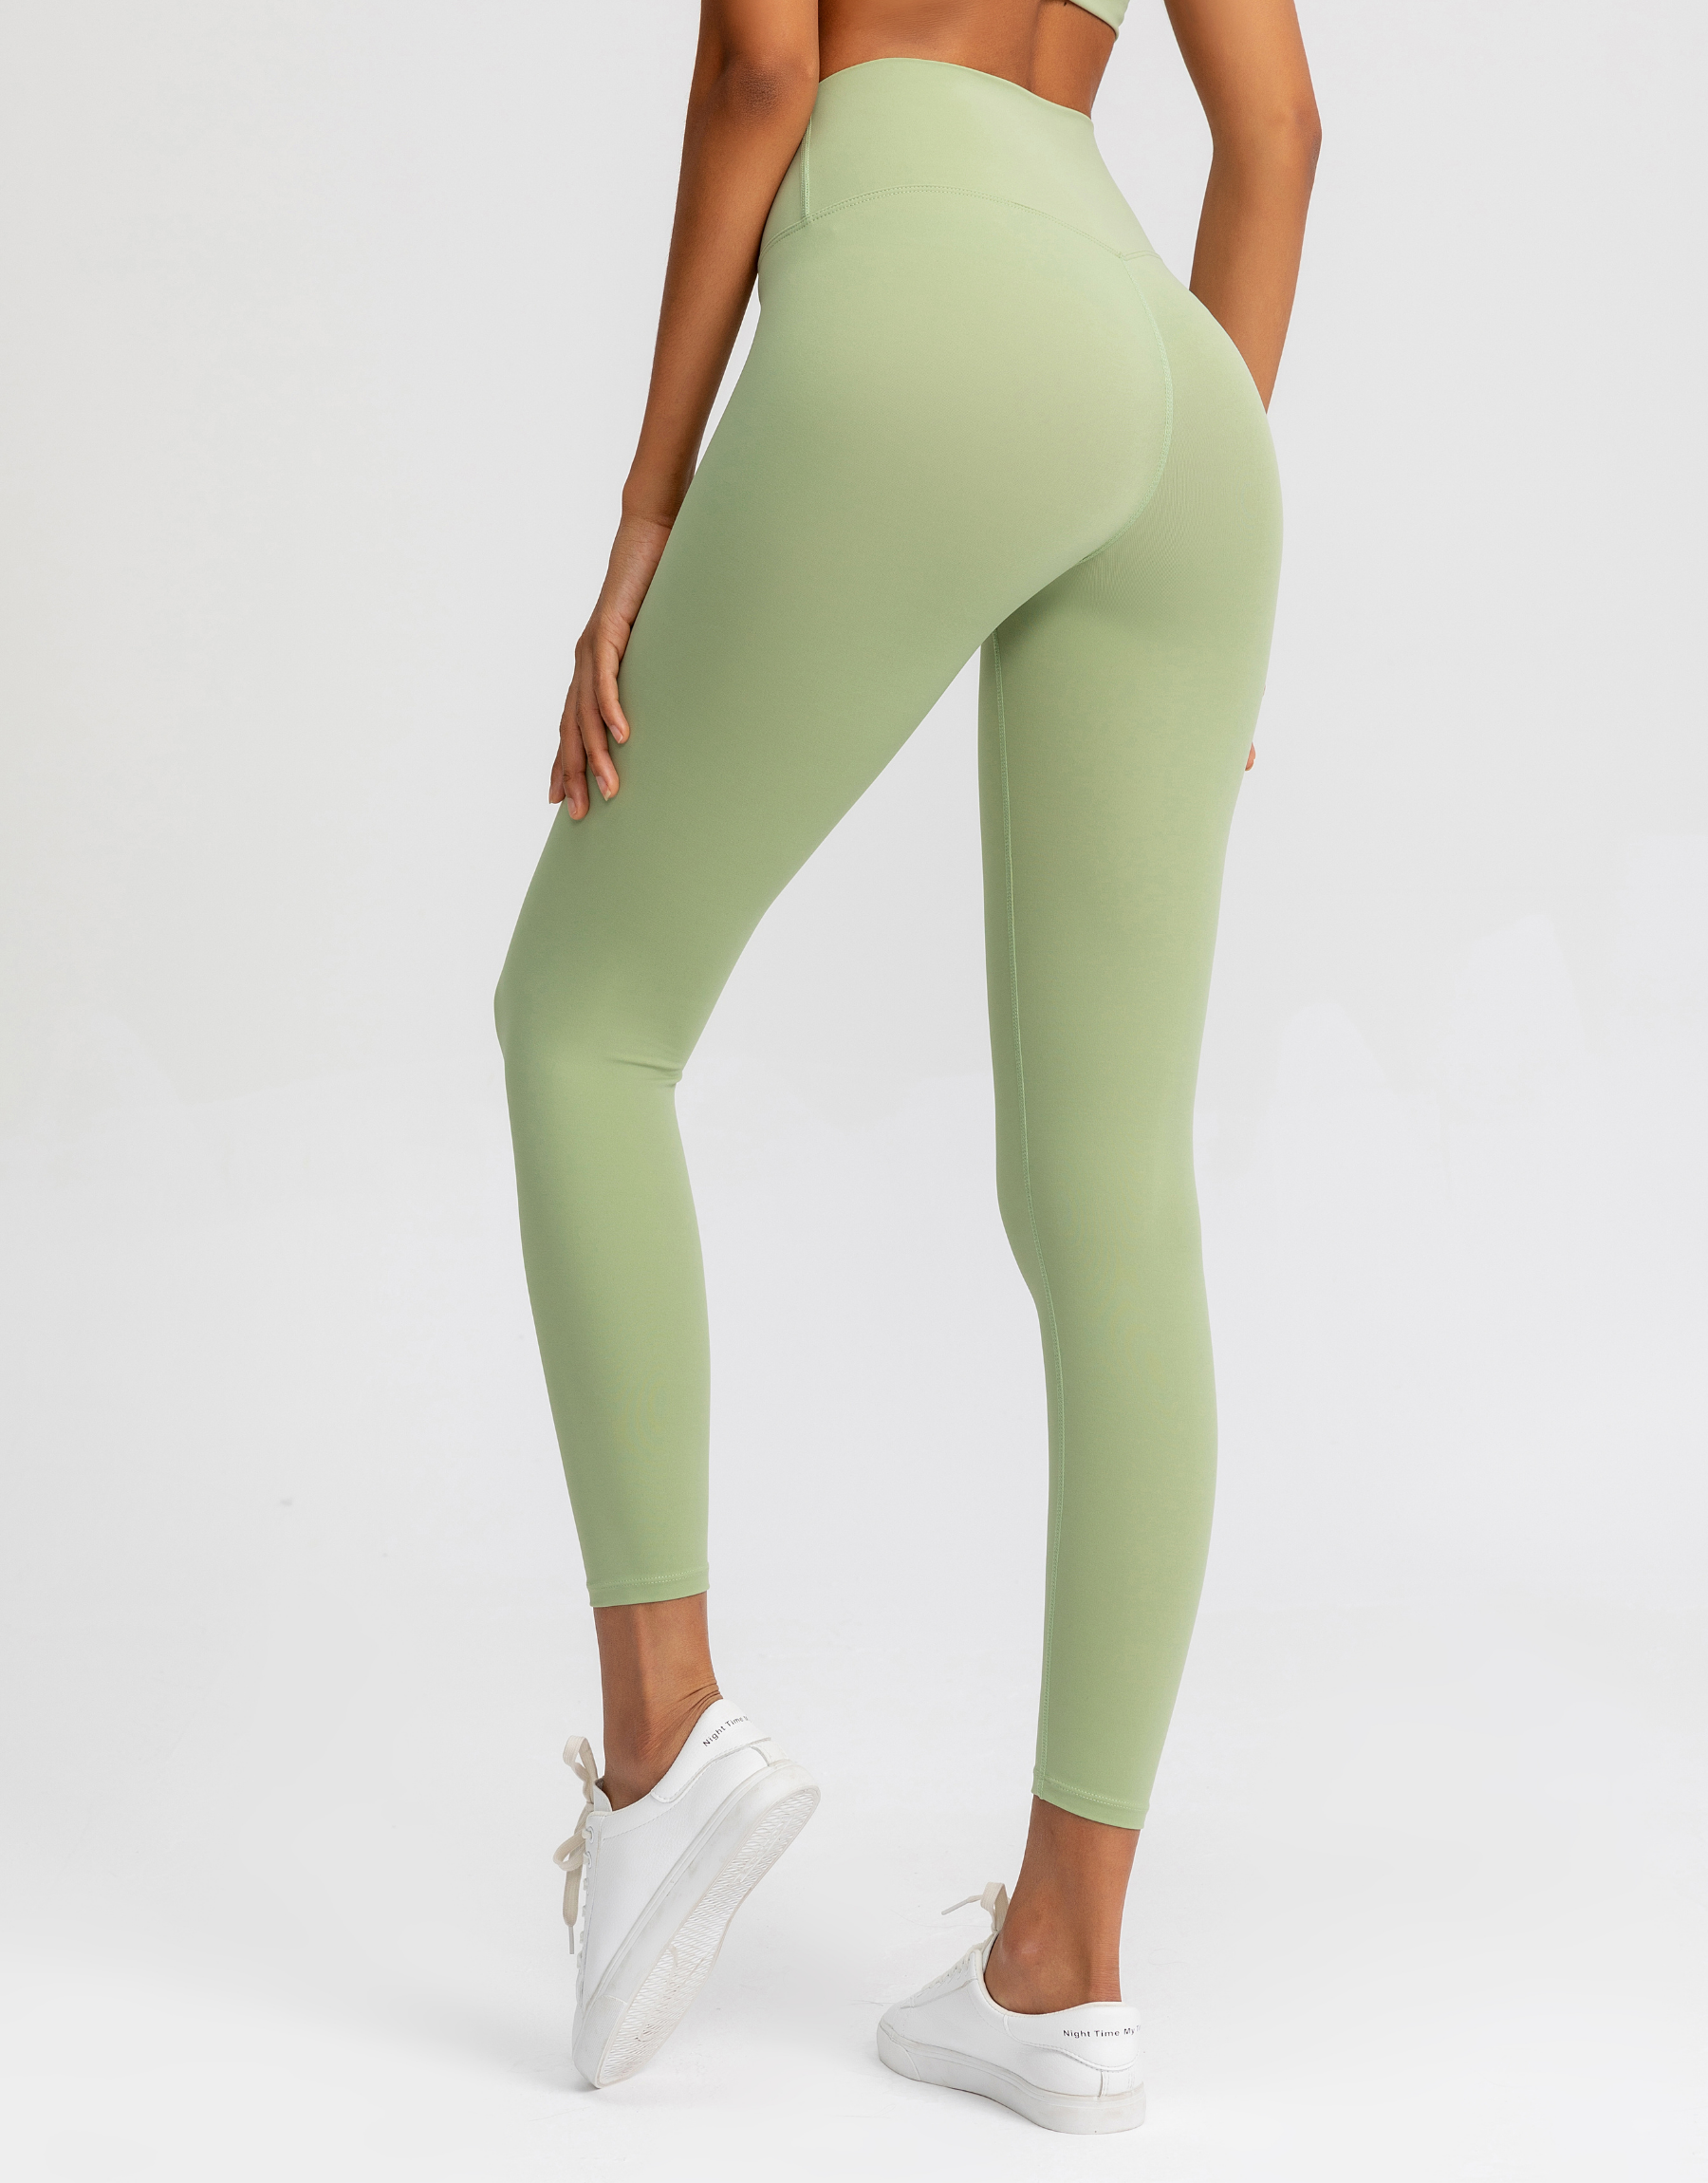 Ultra High Waist Legging (7/8 Length)